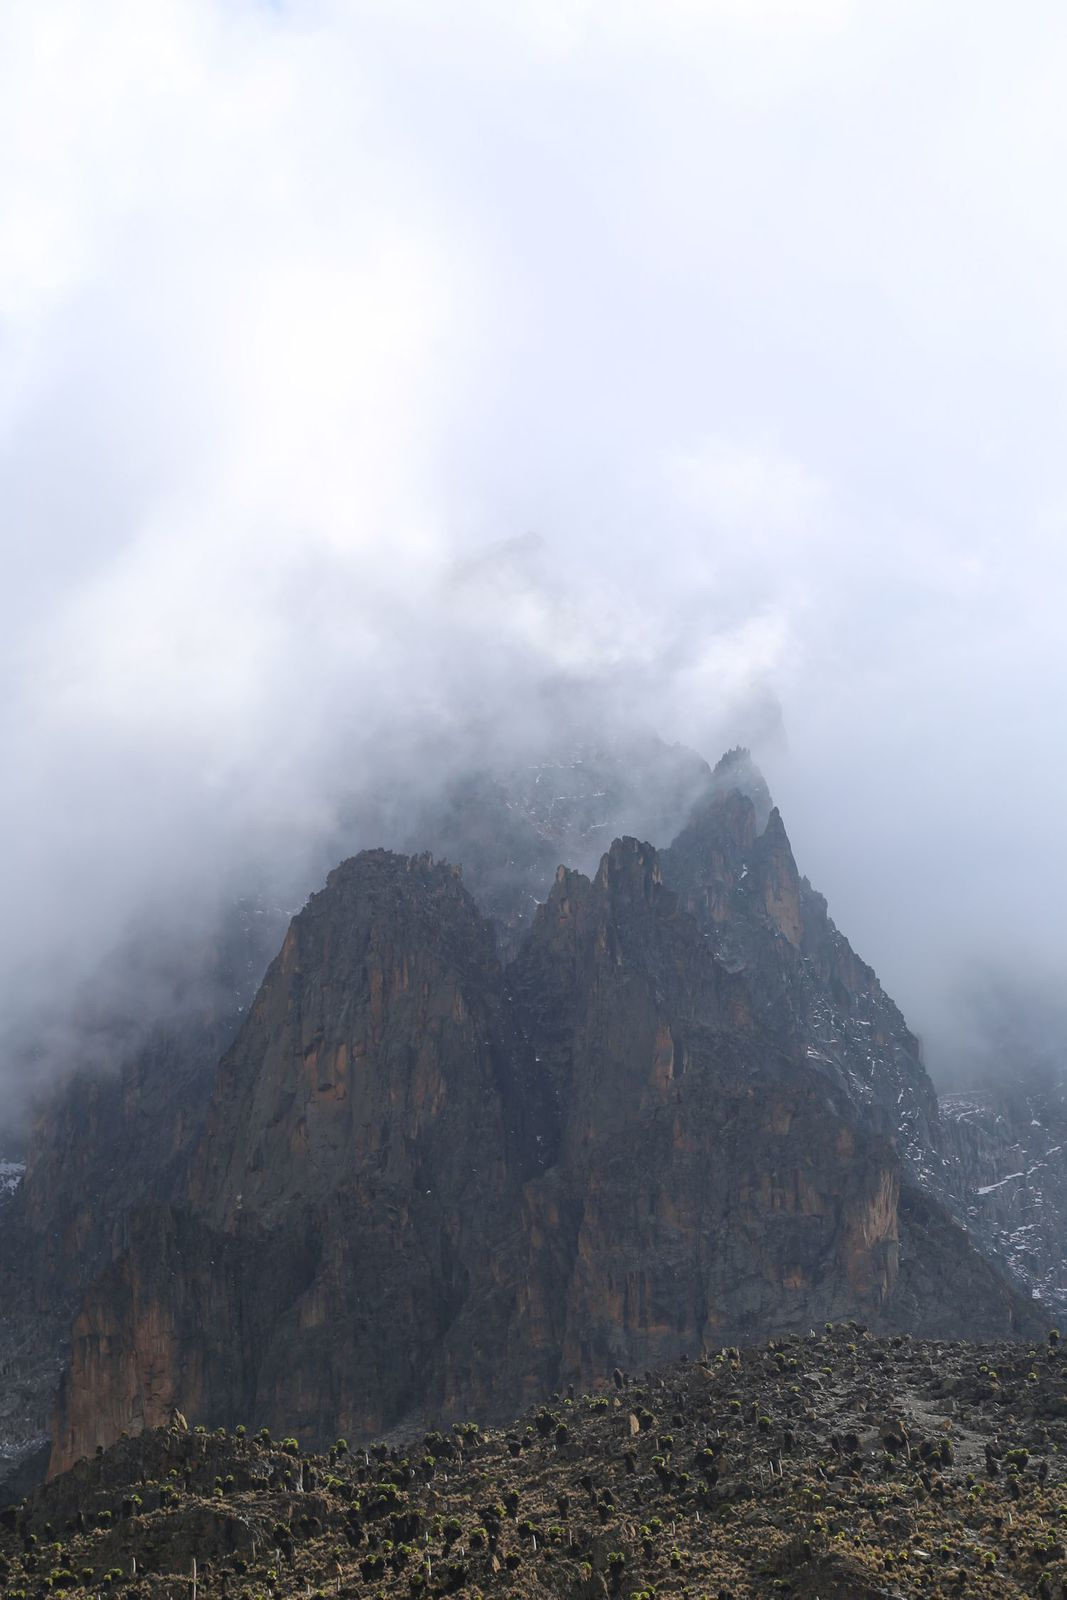 The mighty peak of Mount Kenya....it looked majestic! (...and scary)